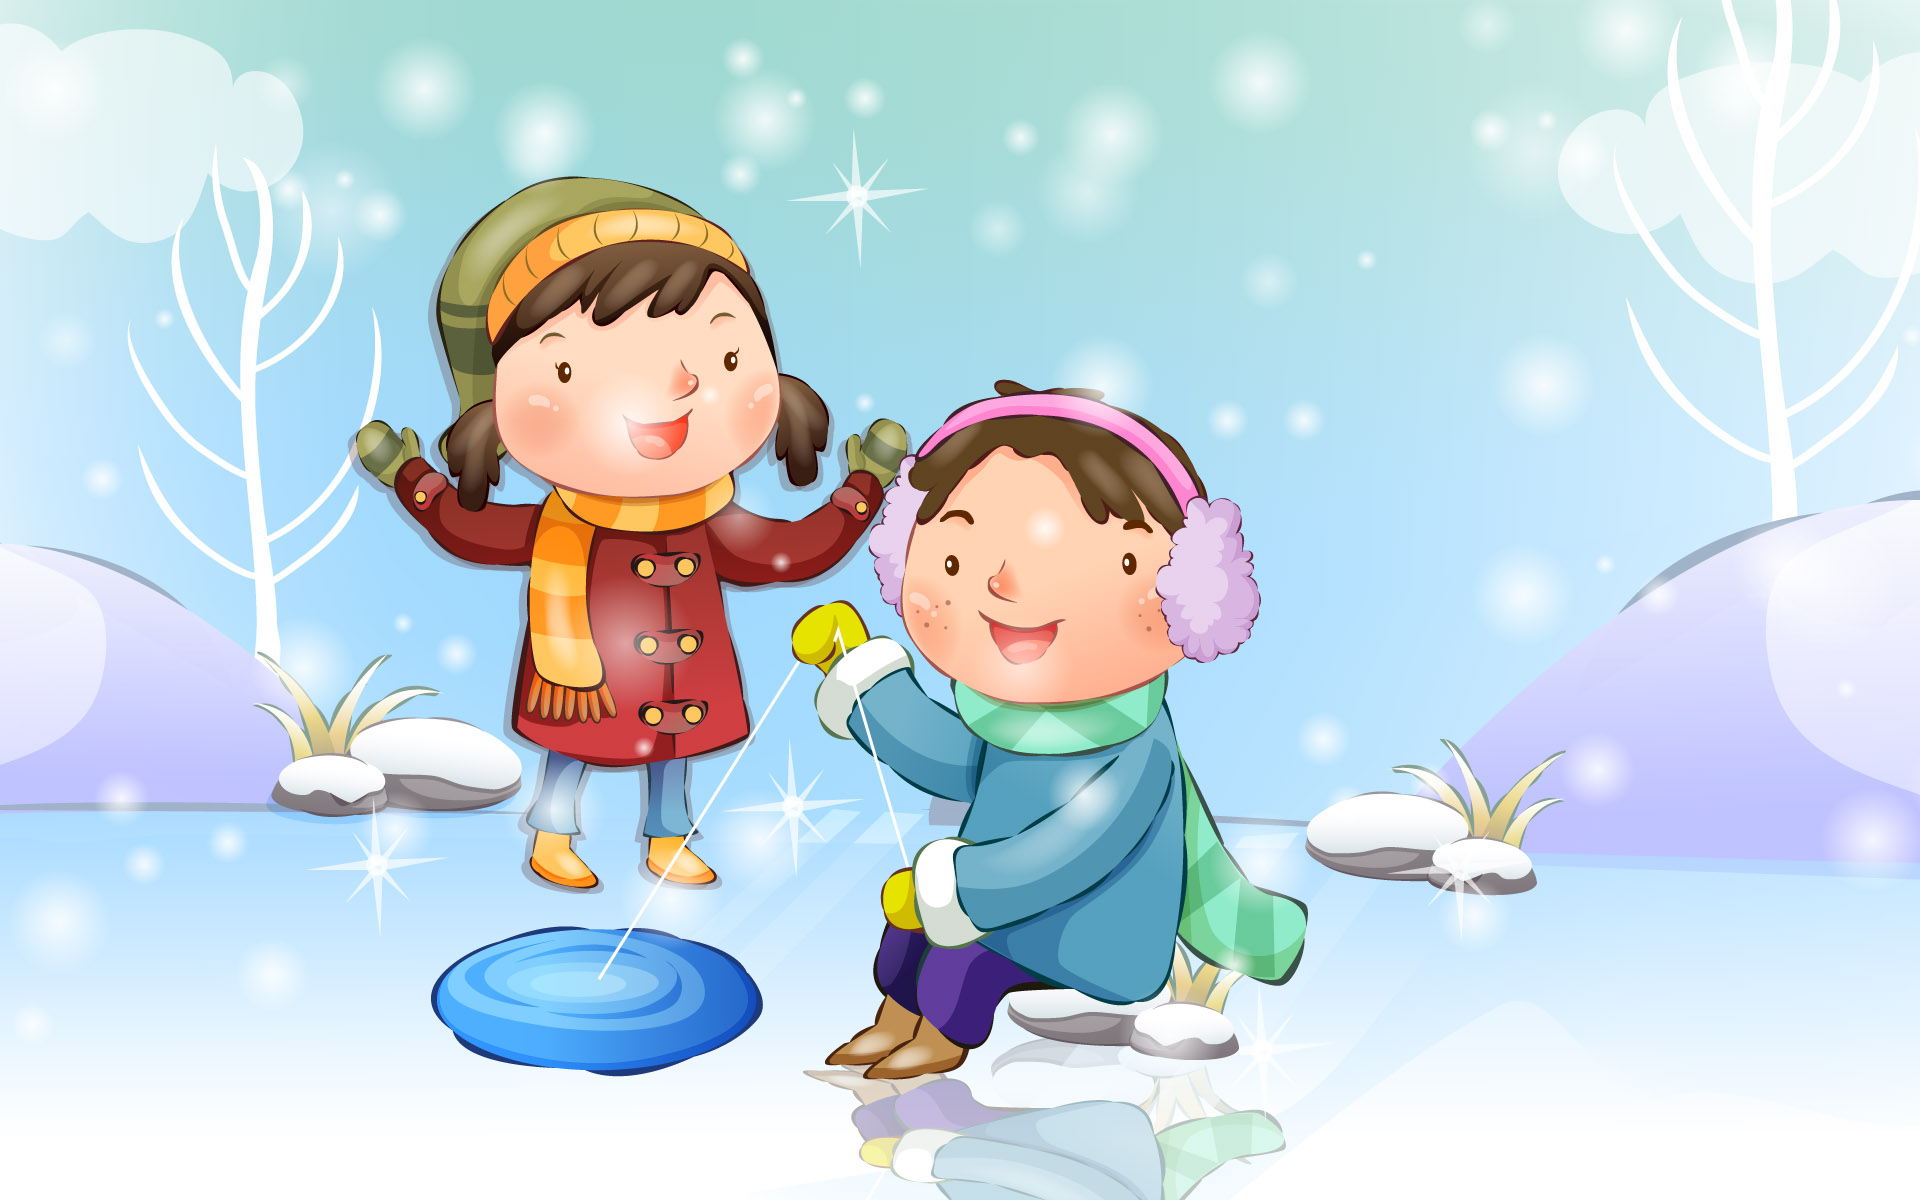 Happy childhood winter chapter illustrations 11829